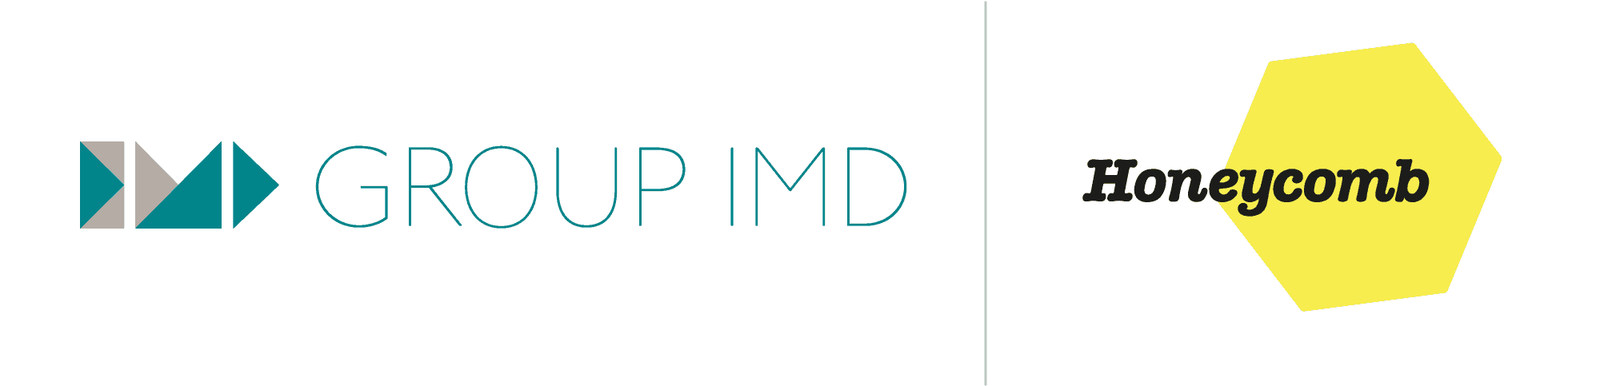 hc-imd-logo_preview.png